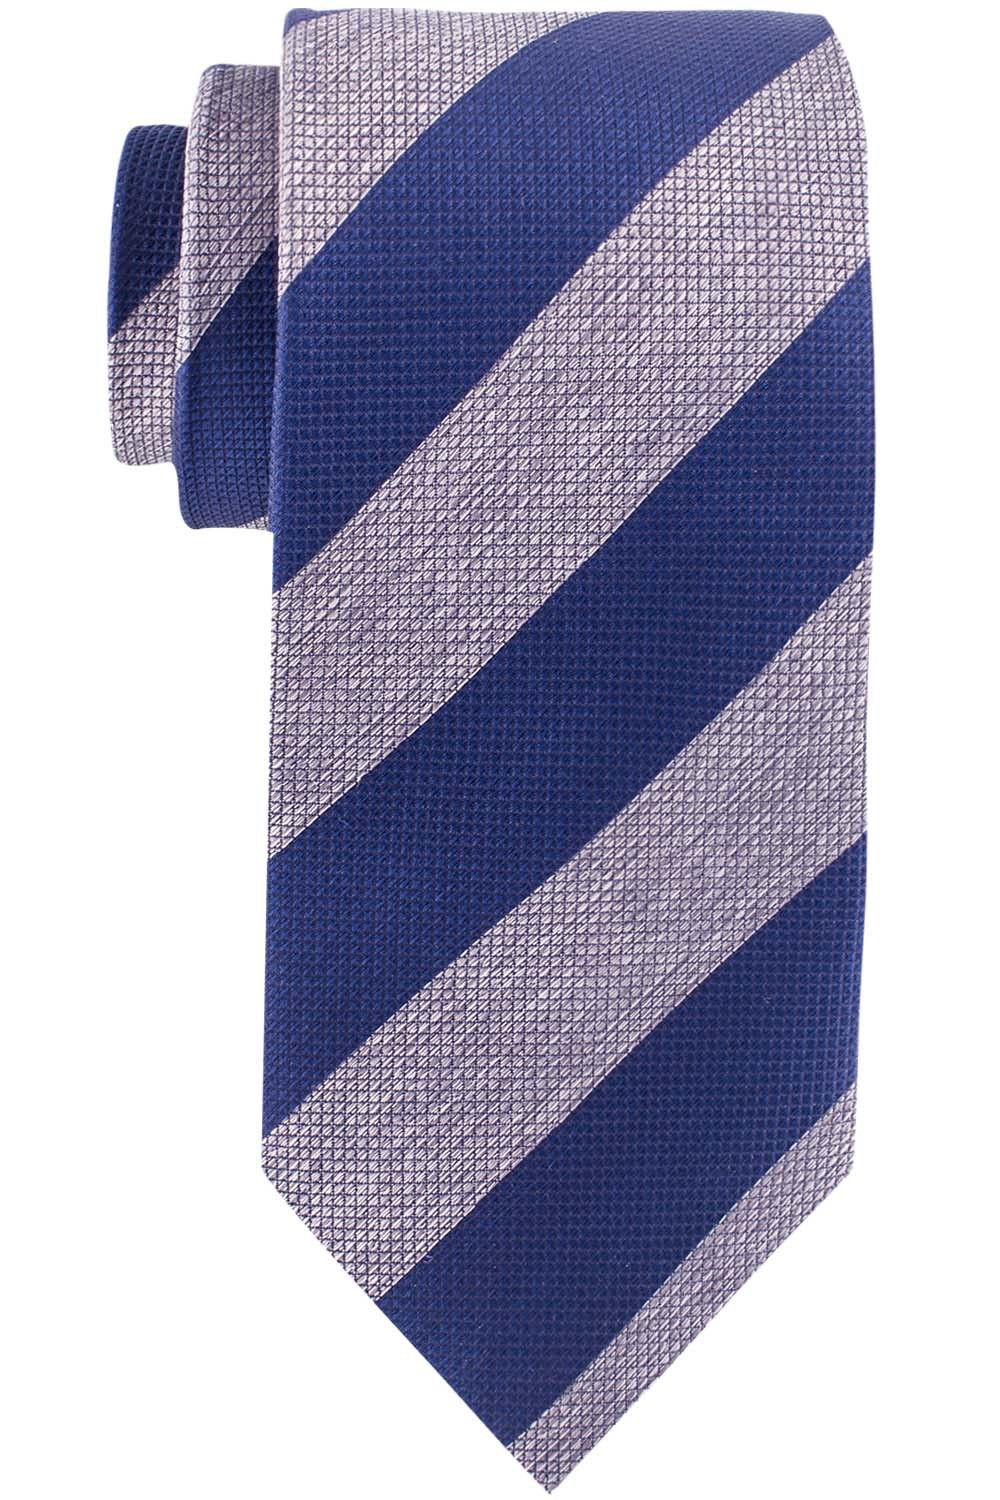 Club Blue And Grey Striped Necktie By The Tie Hub